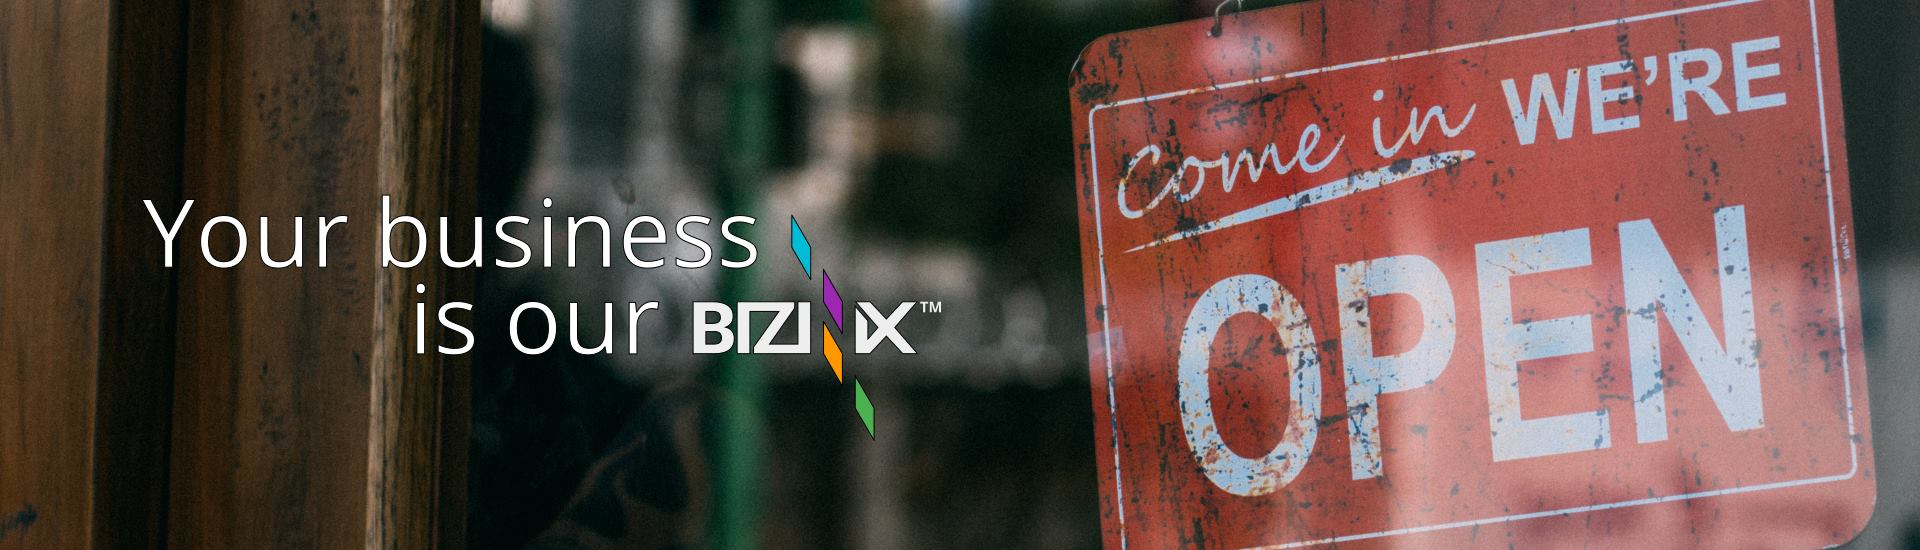 Your business is our BIZINIX™